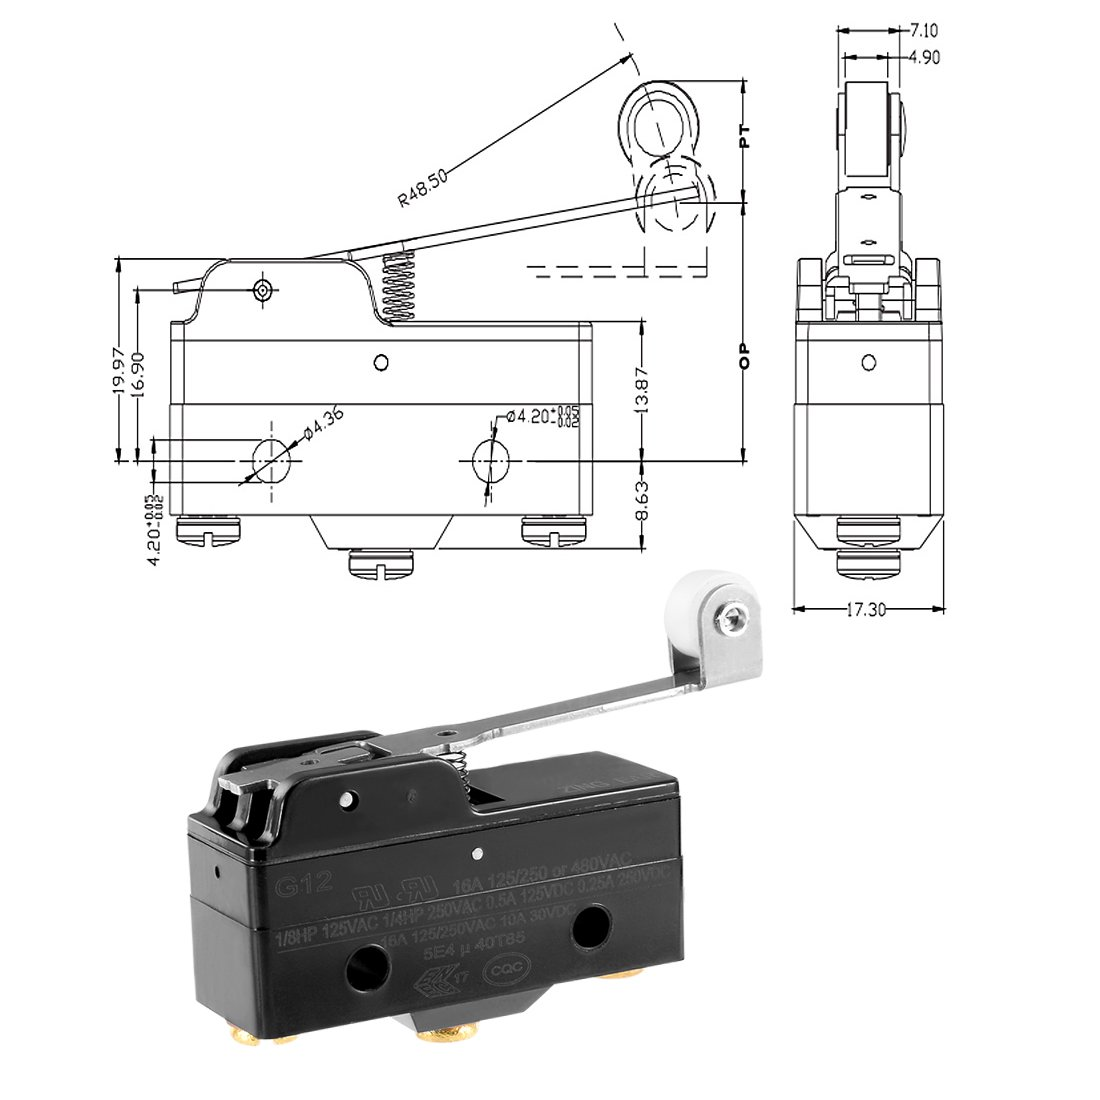 uxcell 3pcs G1216-1RW3 Screw Terminals Long Hinge Roller Lever Micro Limit Switch 380VAC 15A by uxcell (Image #3)